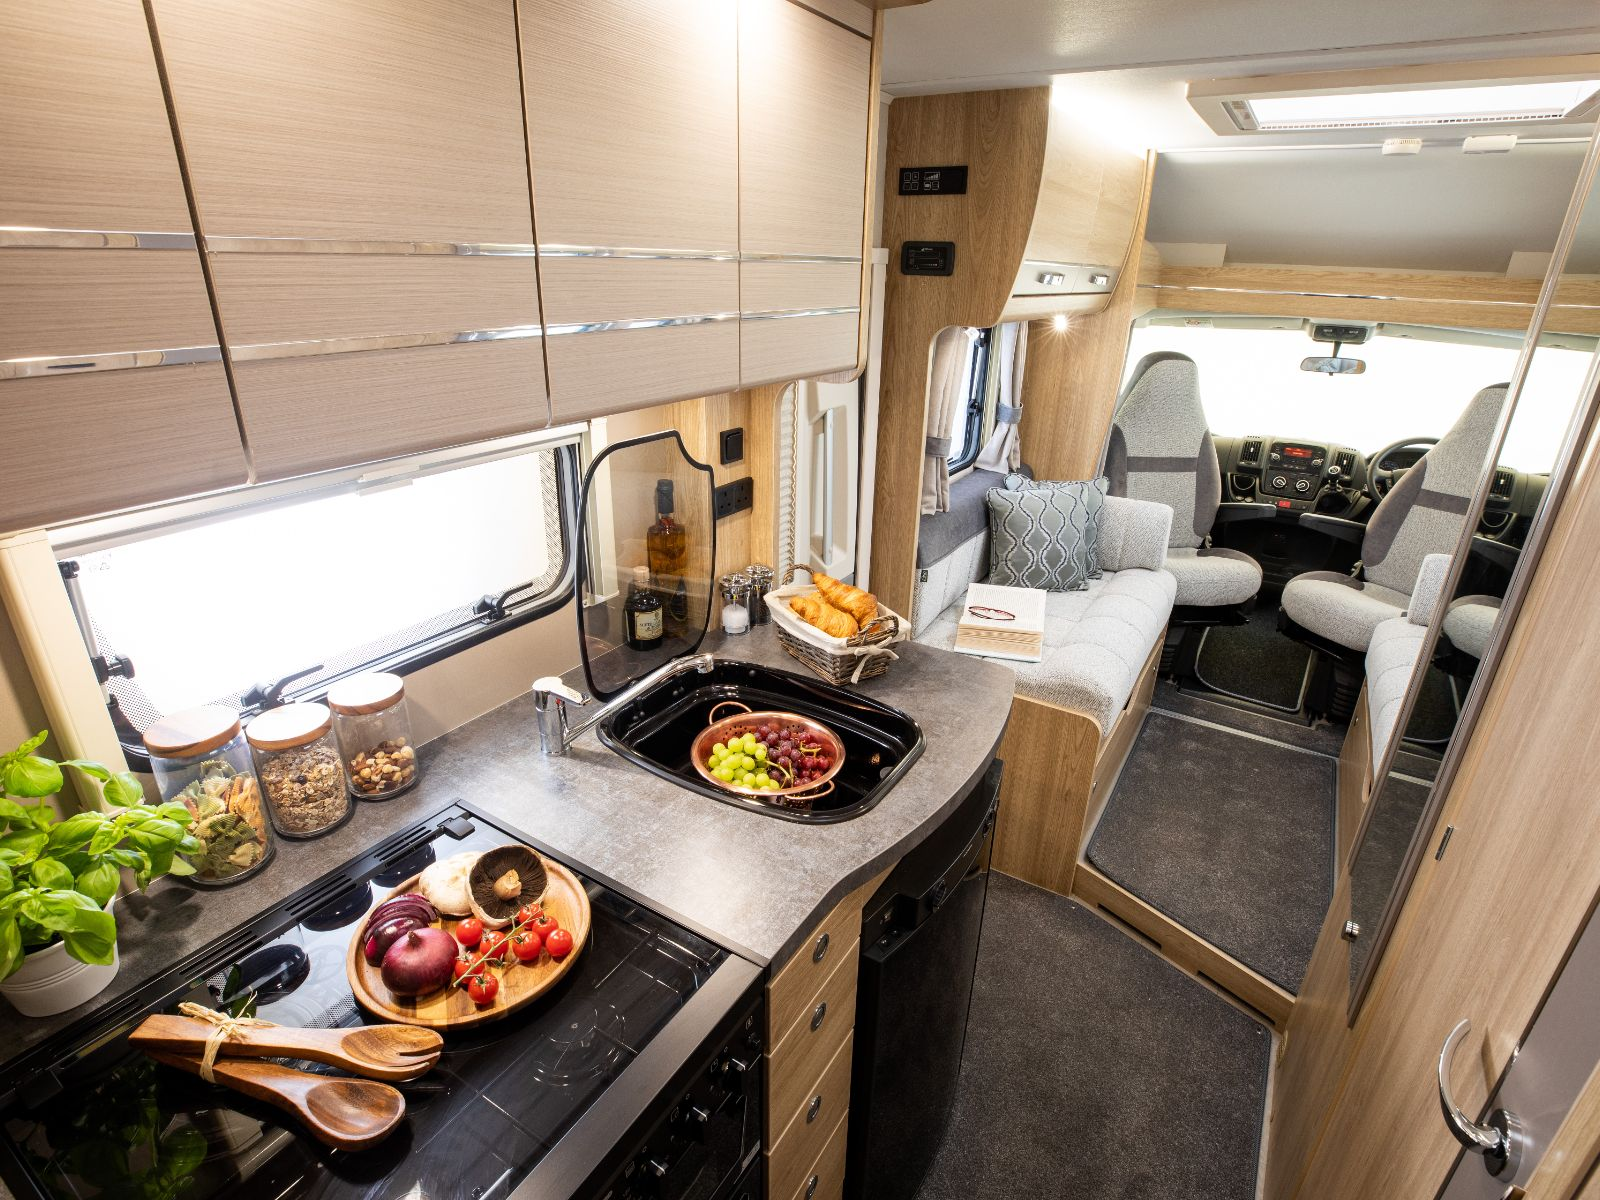 Kitchen with a selection of food prepared and view of the lounge and driving area'